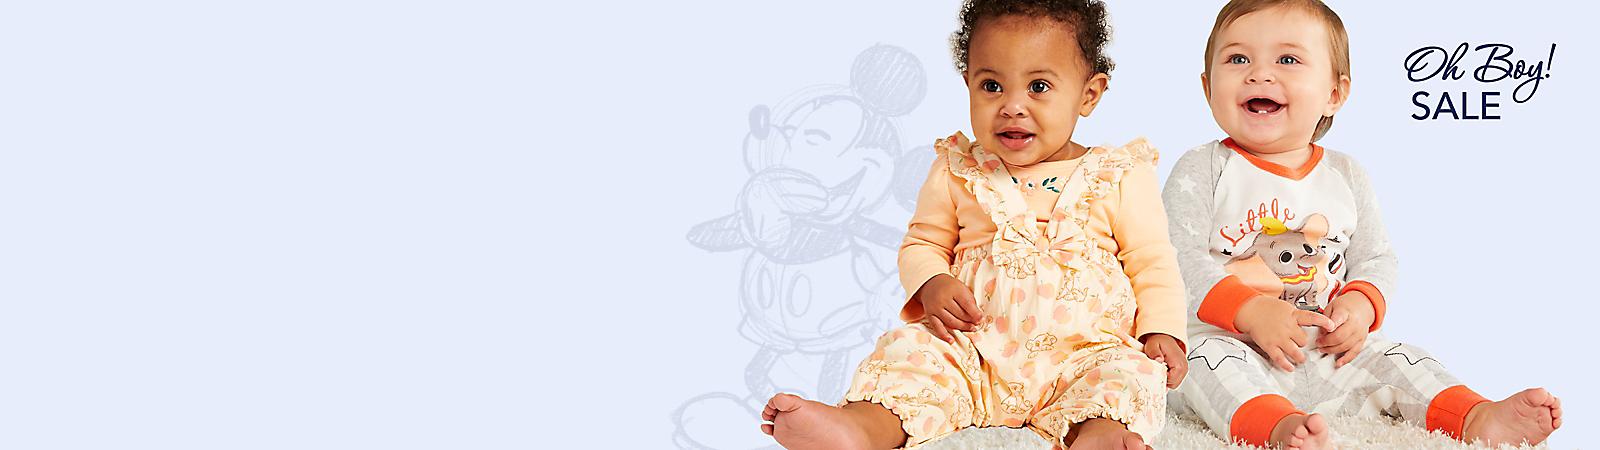 Up to 40% Off Baby Sleepwear, Toys & More